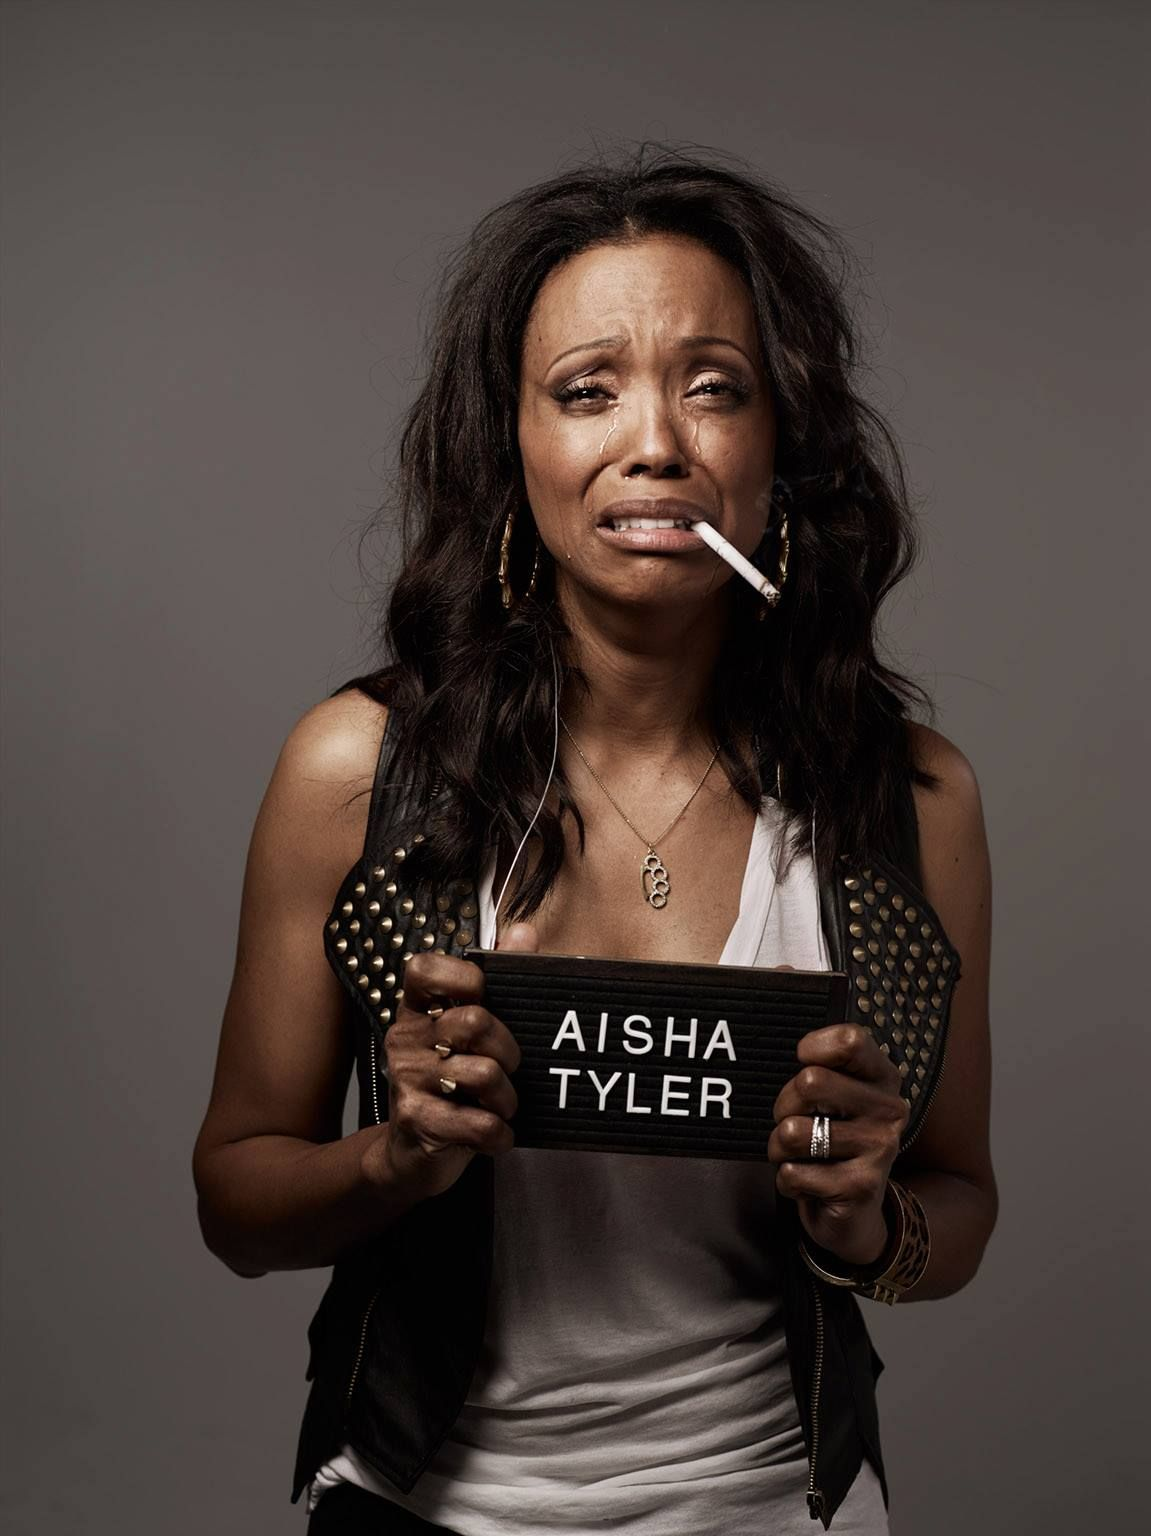 aisha tyler friends